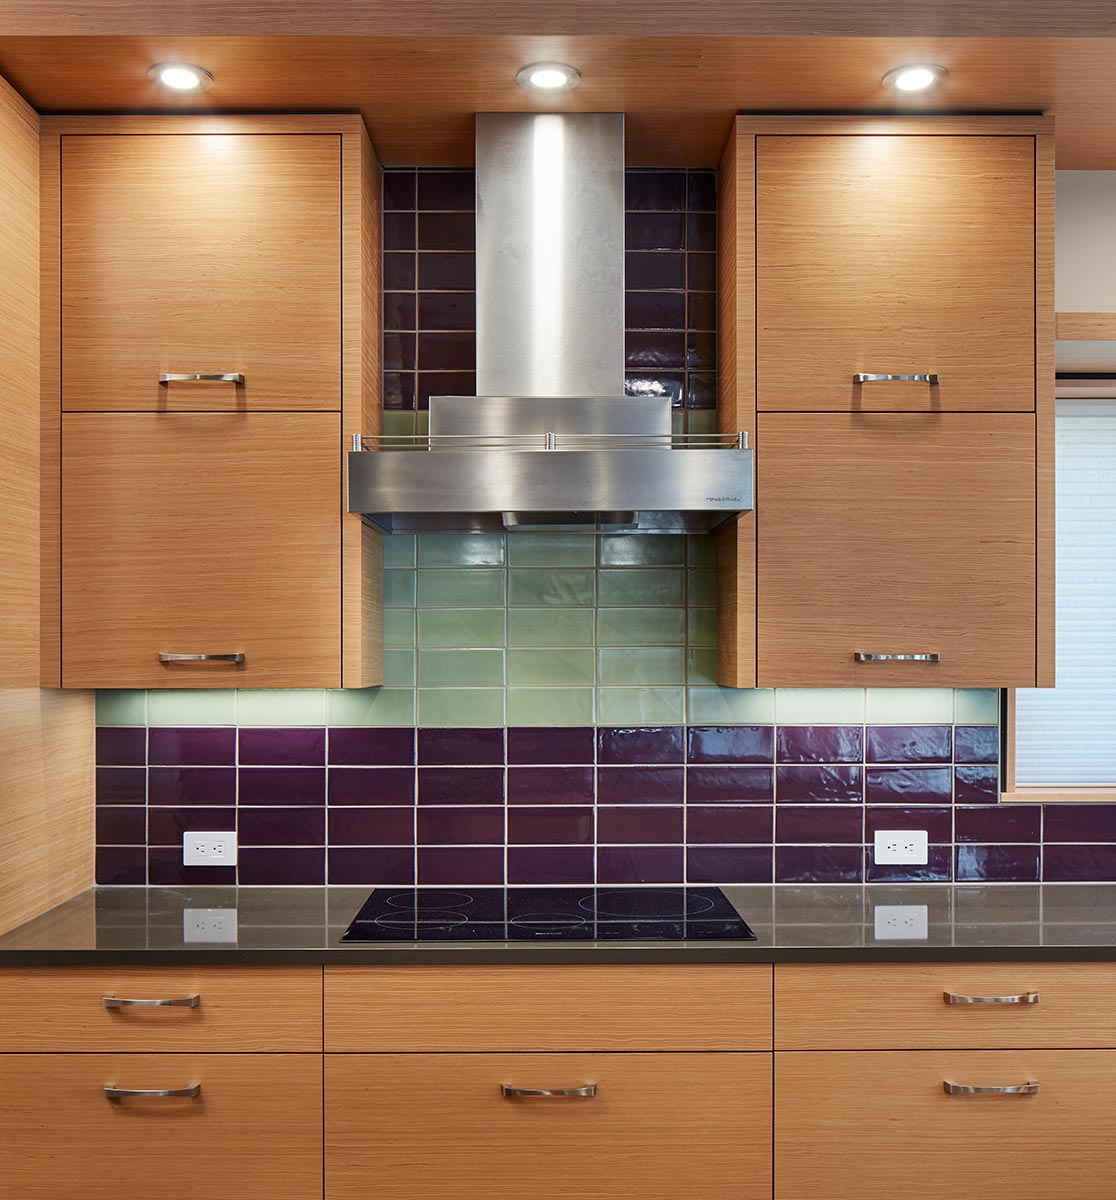 4-hand-crafted-recycled-backsplash-tile-minneapolis-interior-designer.jpg